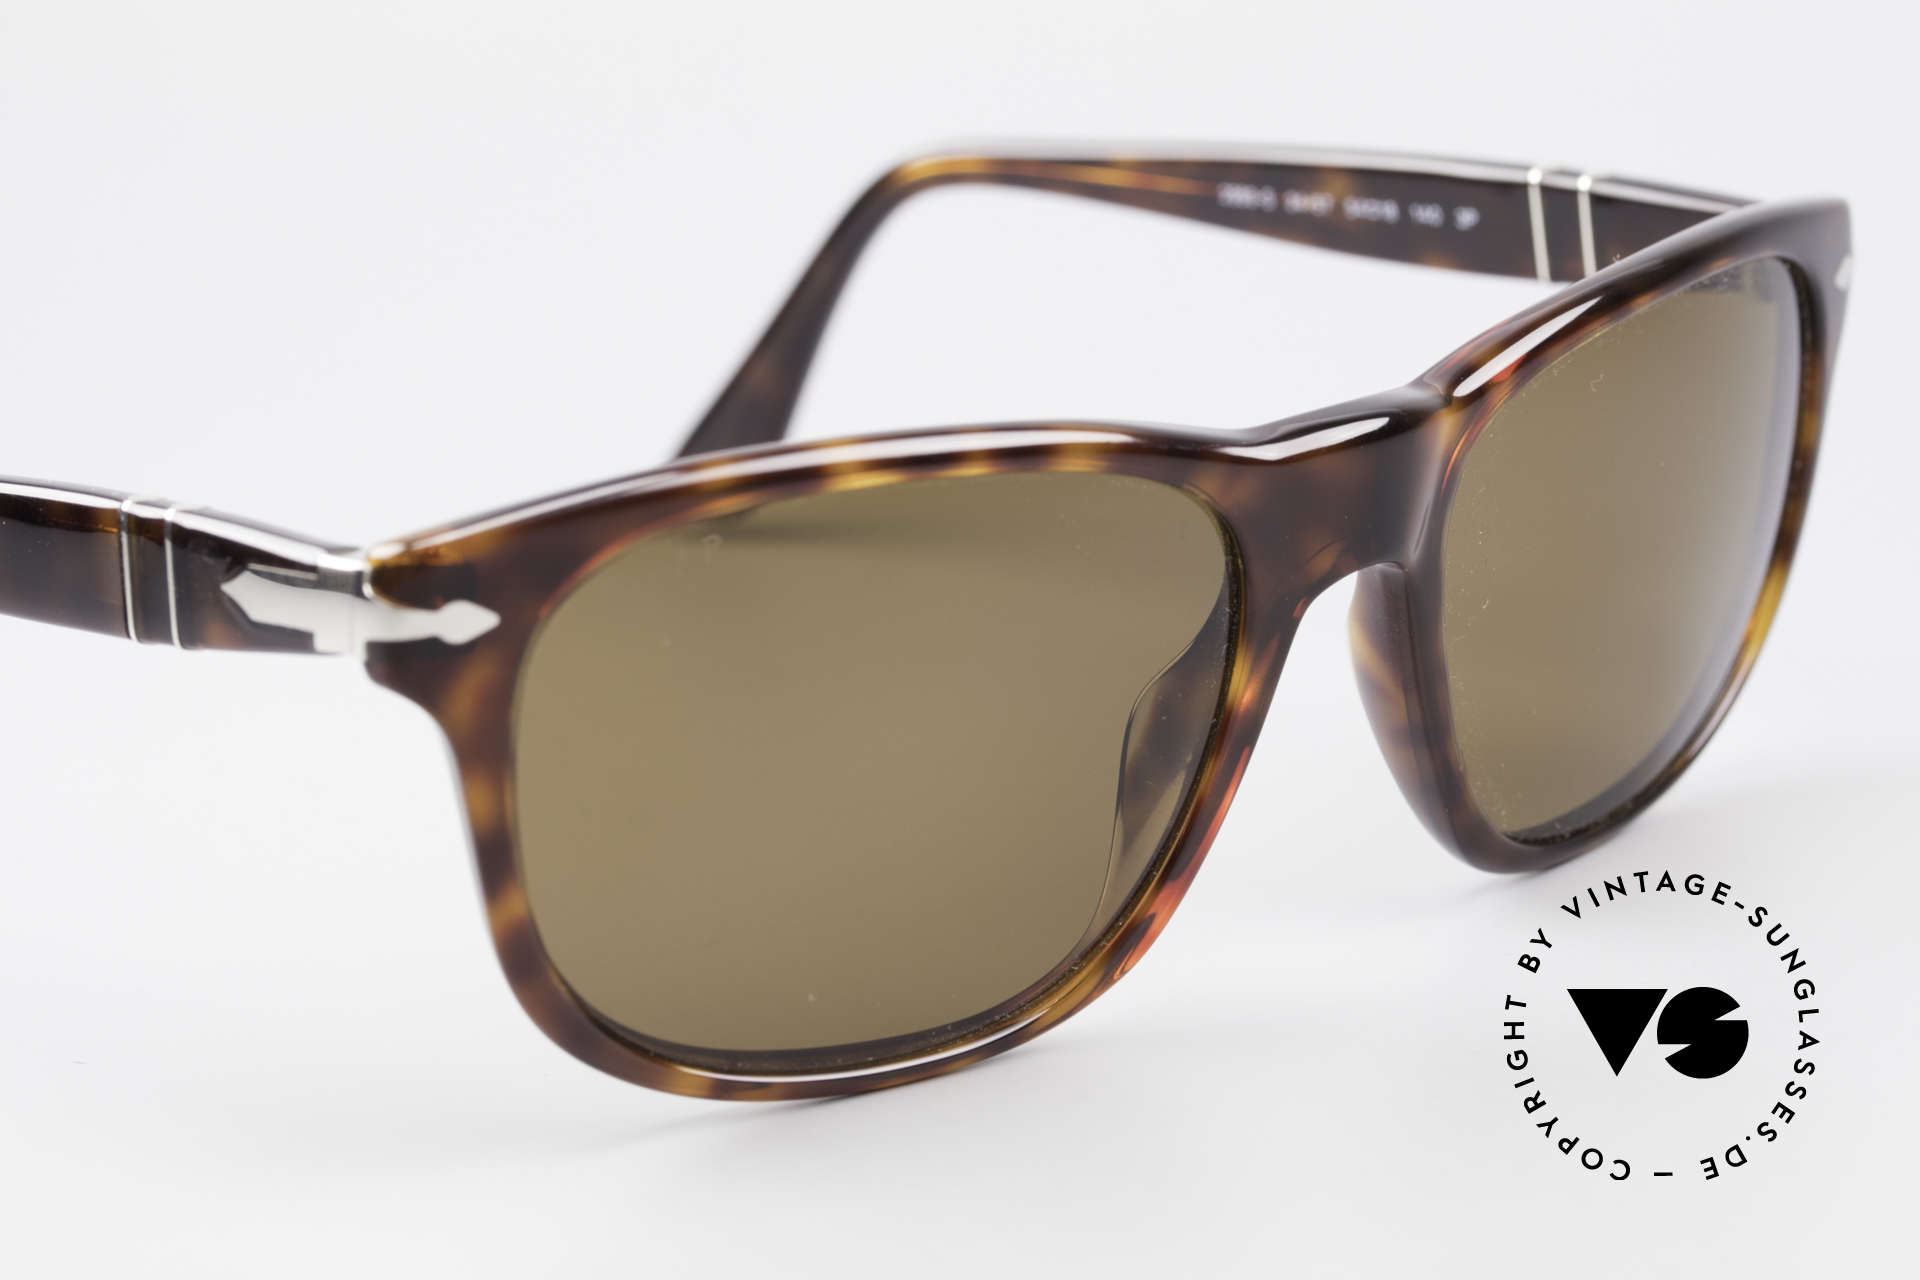 Persol 2989 Polarized Sunglasses Vintage, NO RETRO frame, but a 20 years old ORIGINAL, Made for Men and Women